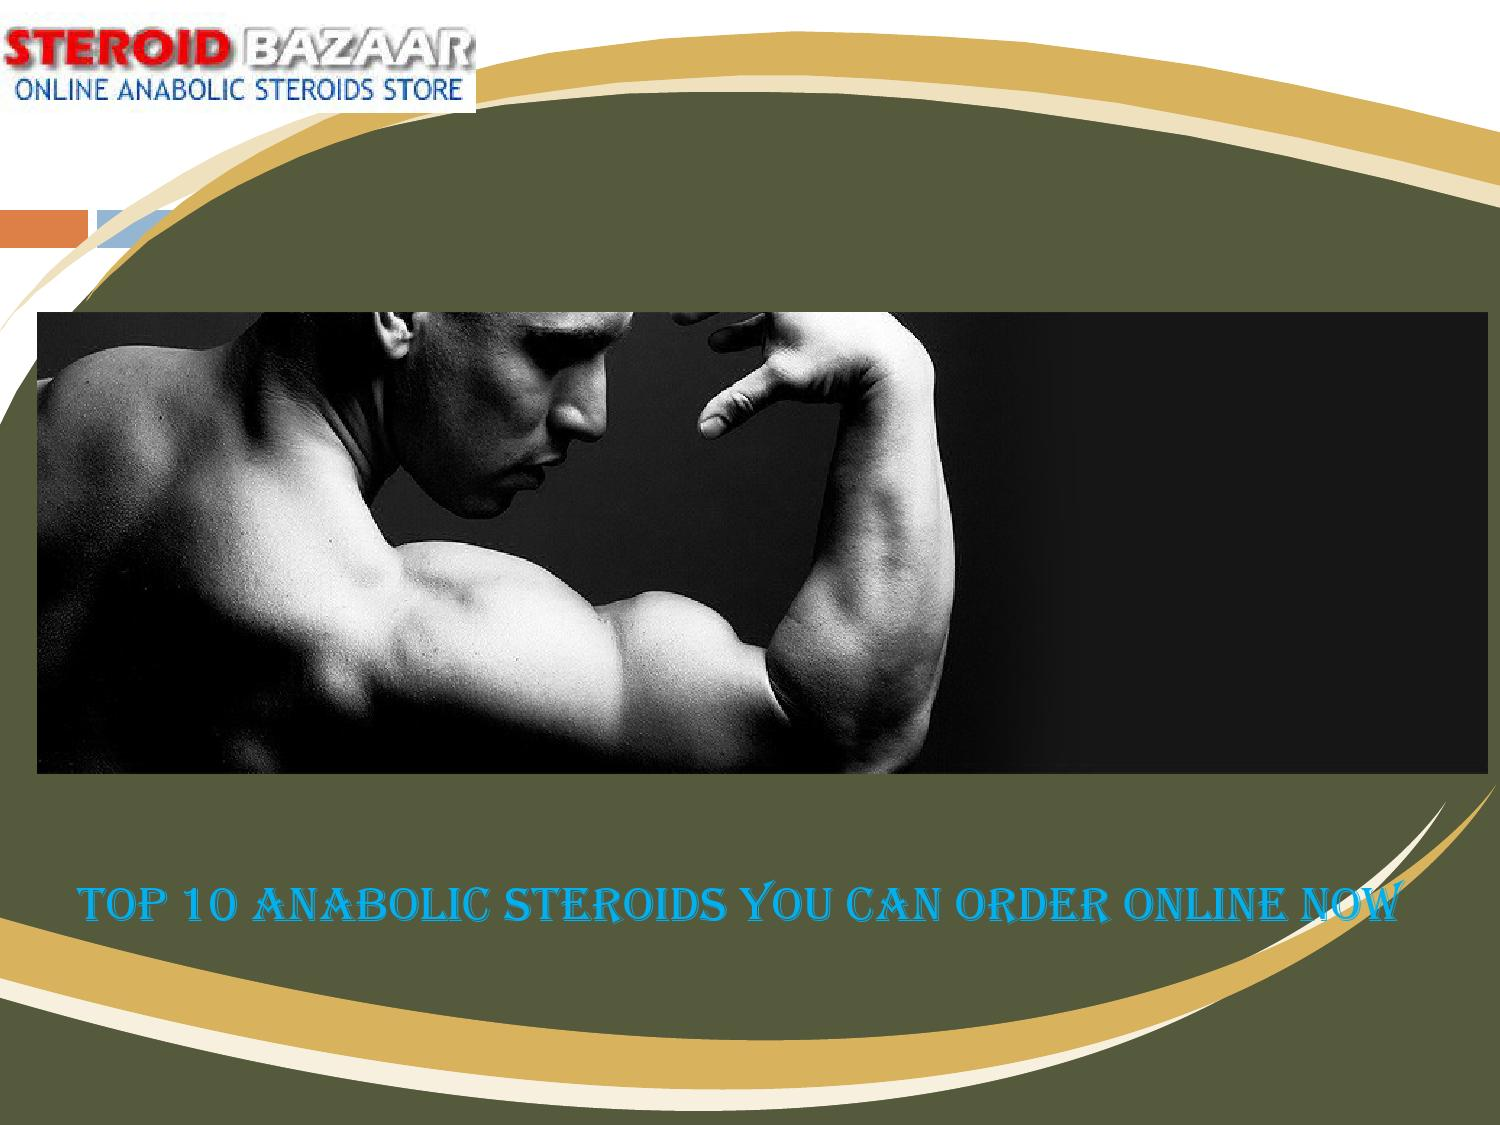 Anabolic Steroids You can Order Online? by Steroid Bazaar ...